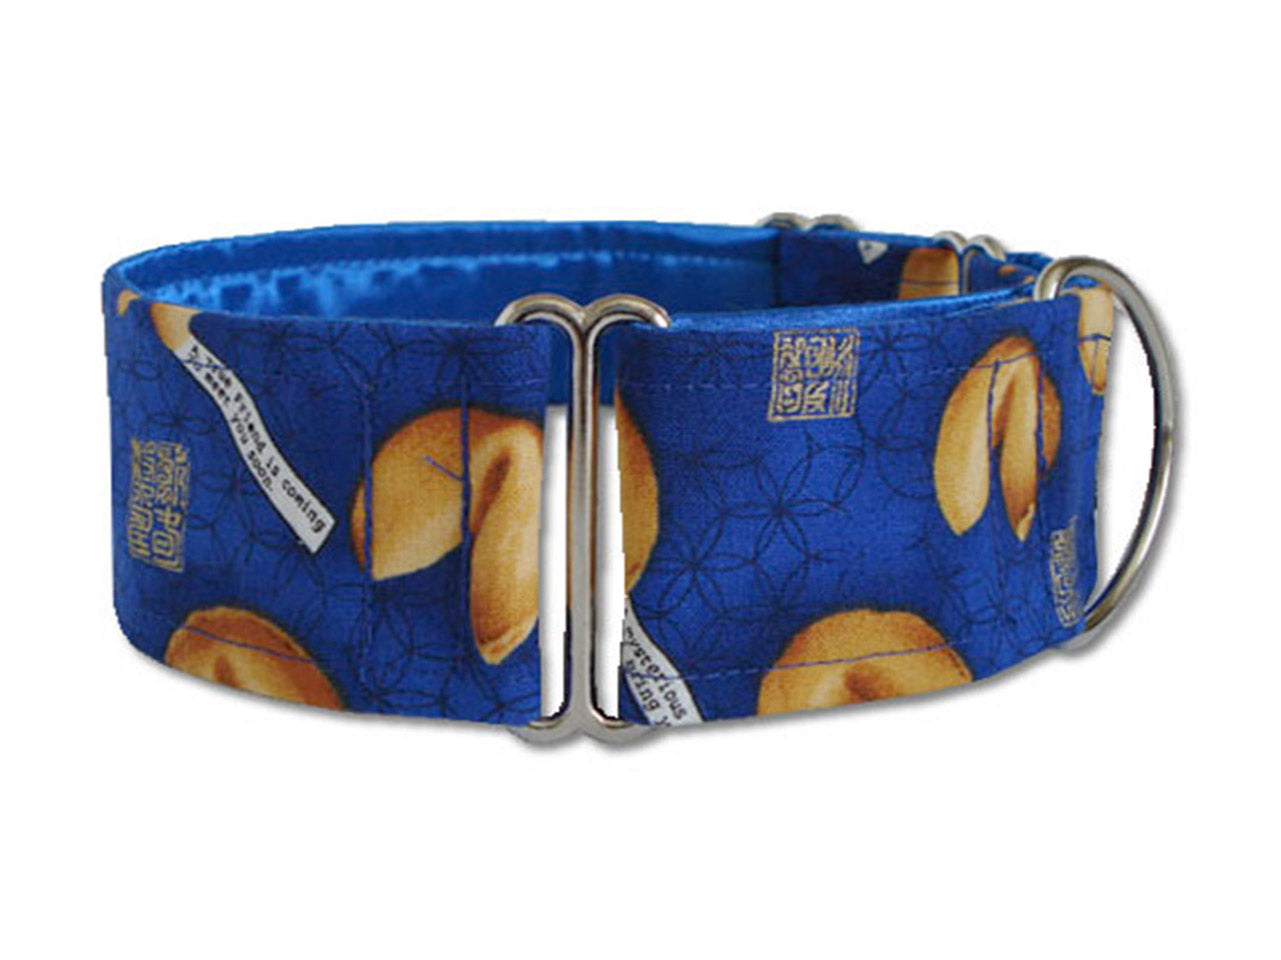 The golden fortune cookies on this bright blue collar say your pooch is one lucky dog!